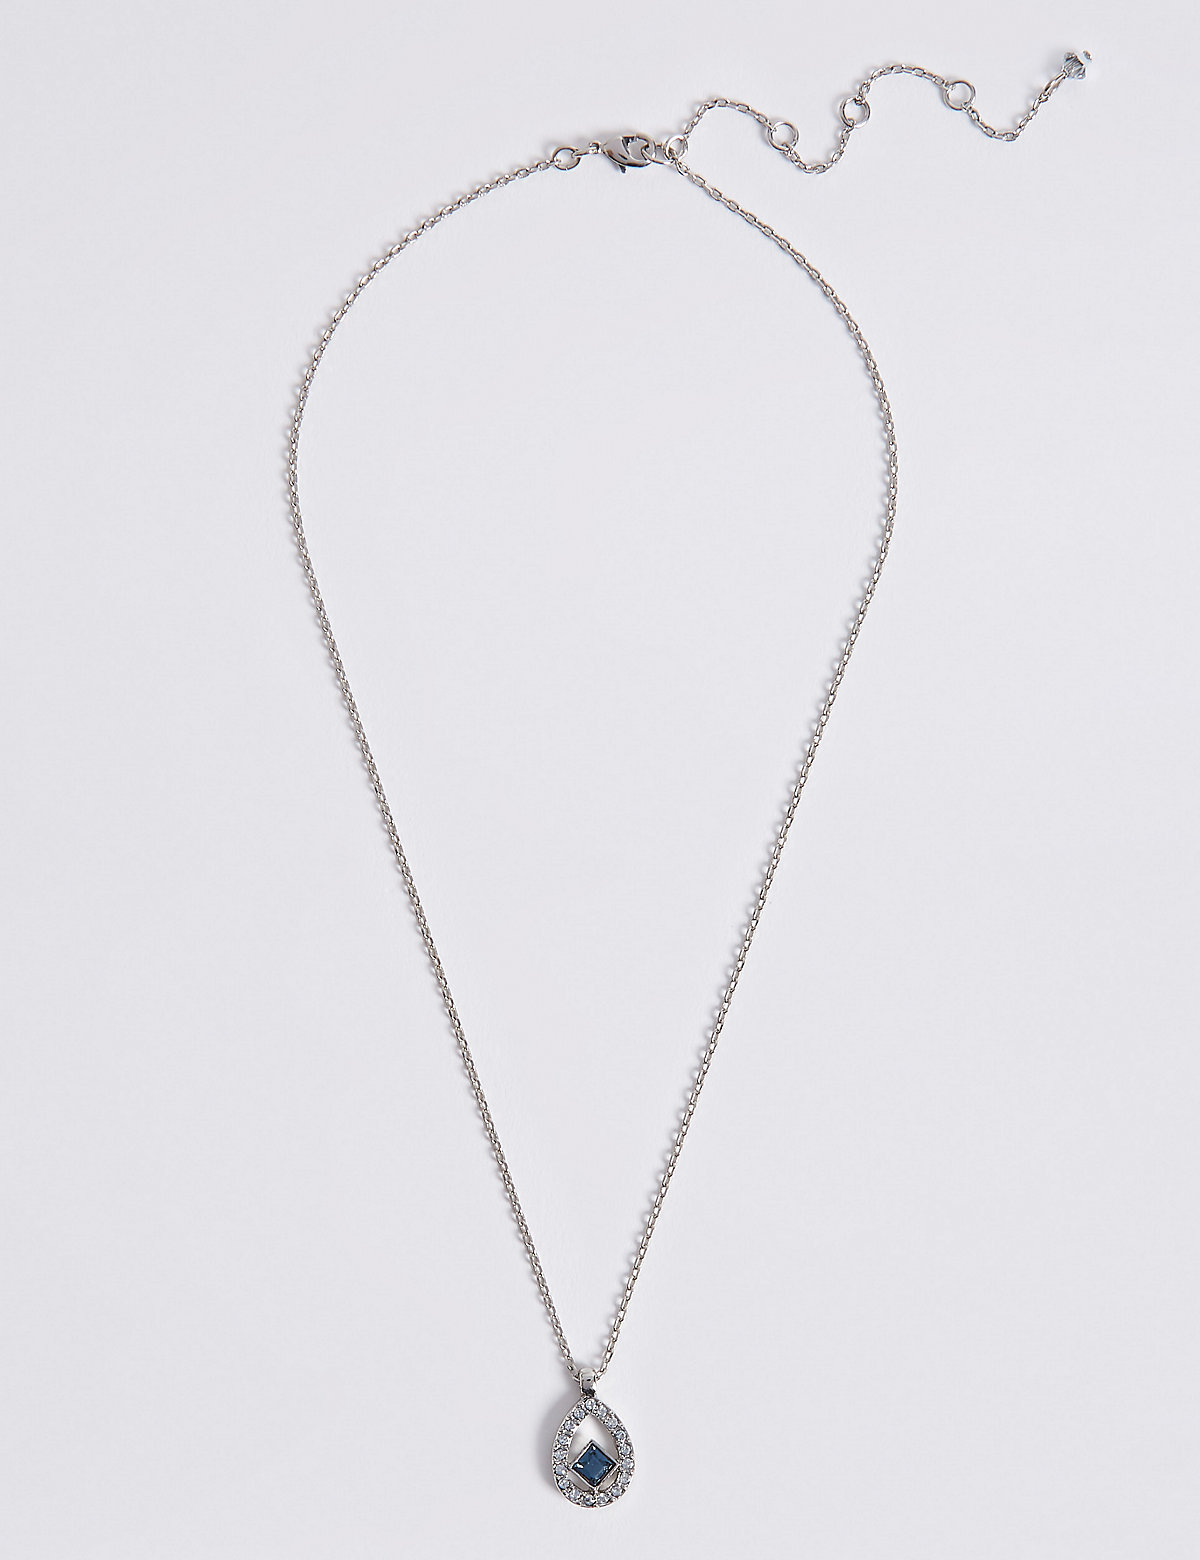 M&S Collection Floating Square Necklace MADE WITH SWAROVSKI ELEMENTS